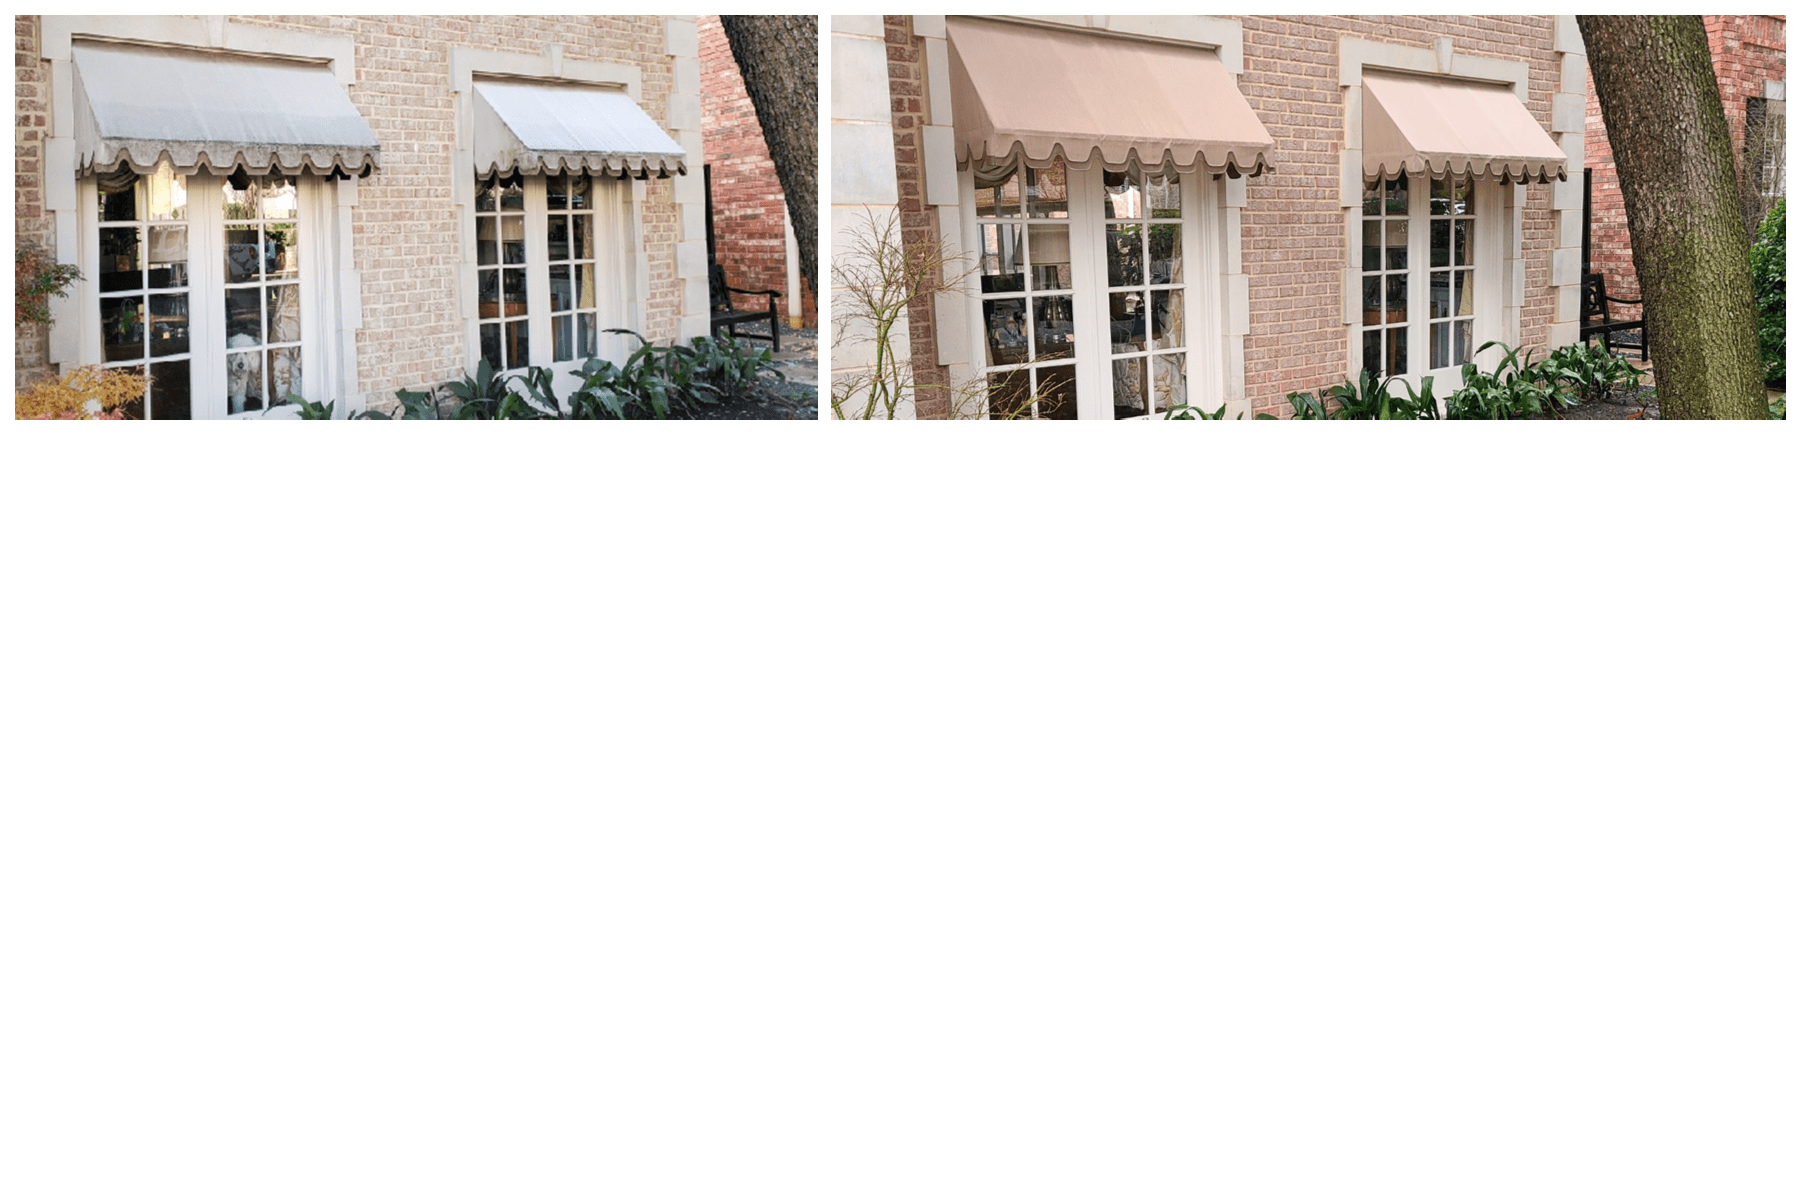 Awnings before and after softwash